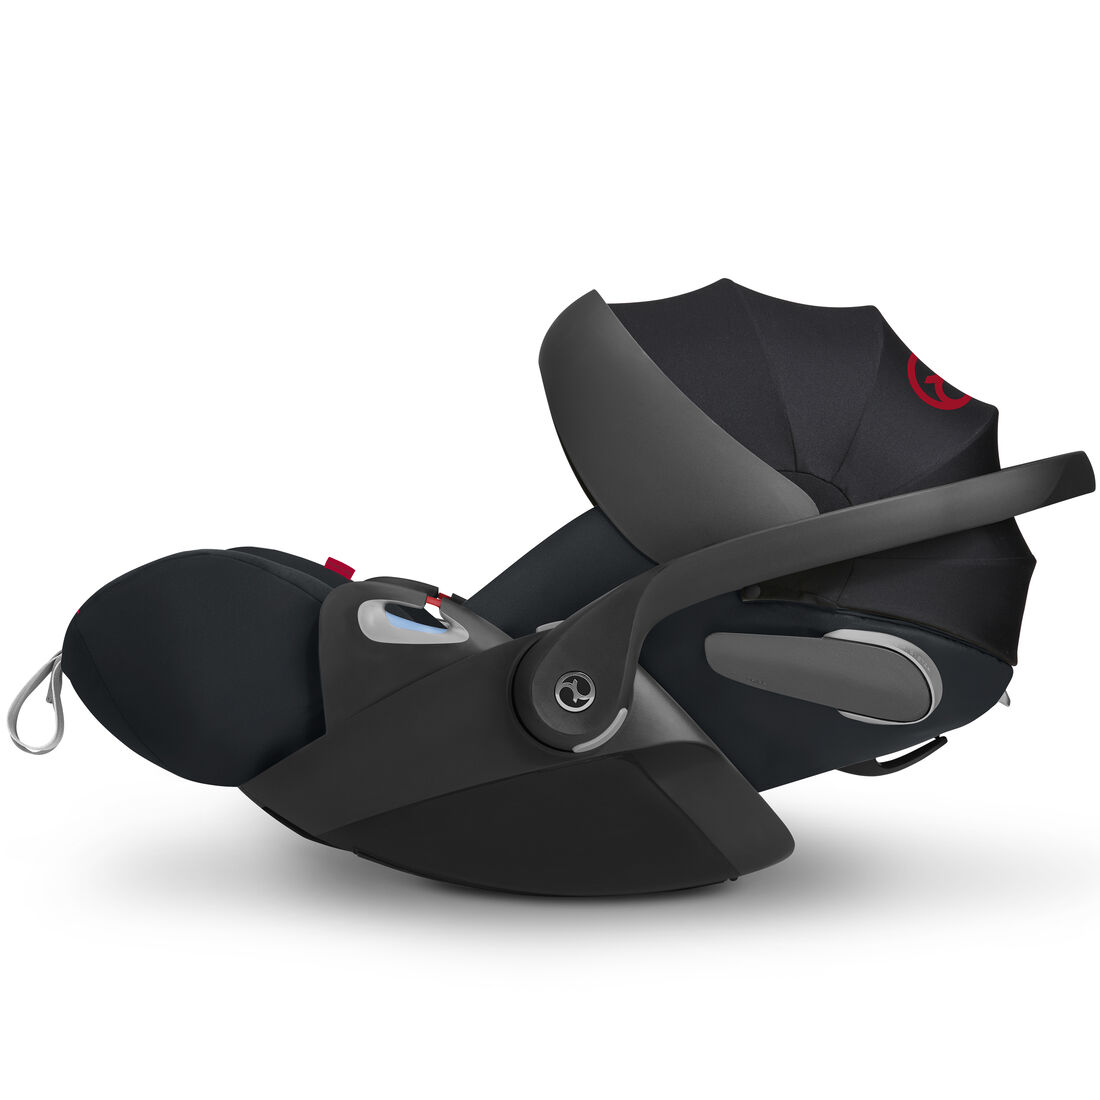 CYBEX Cloud Z i-Size - Ferrari Victory Black in Ferrari Victory Black large image number 1